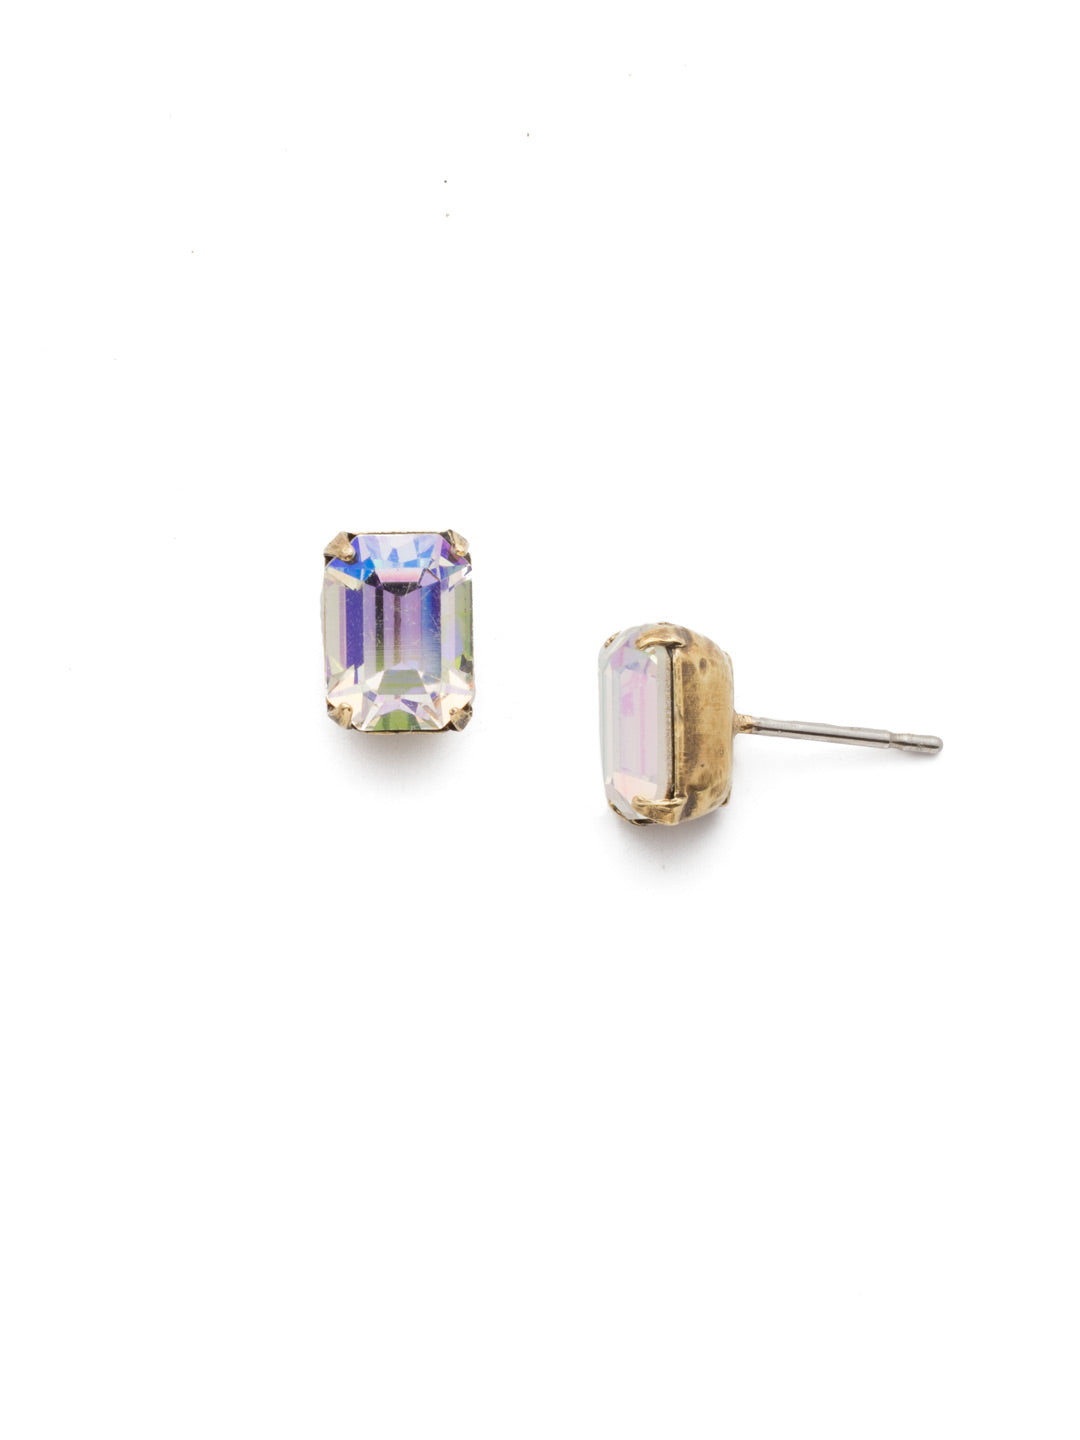 Mini Emerald Cut Stud Earrings - EBY42AGCAB